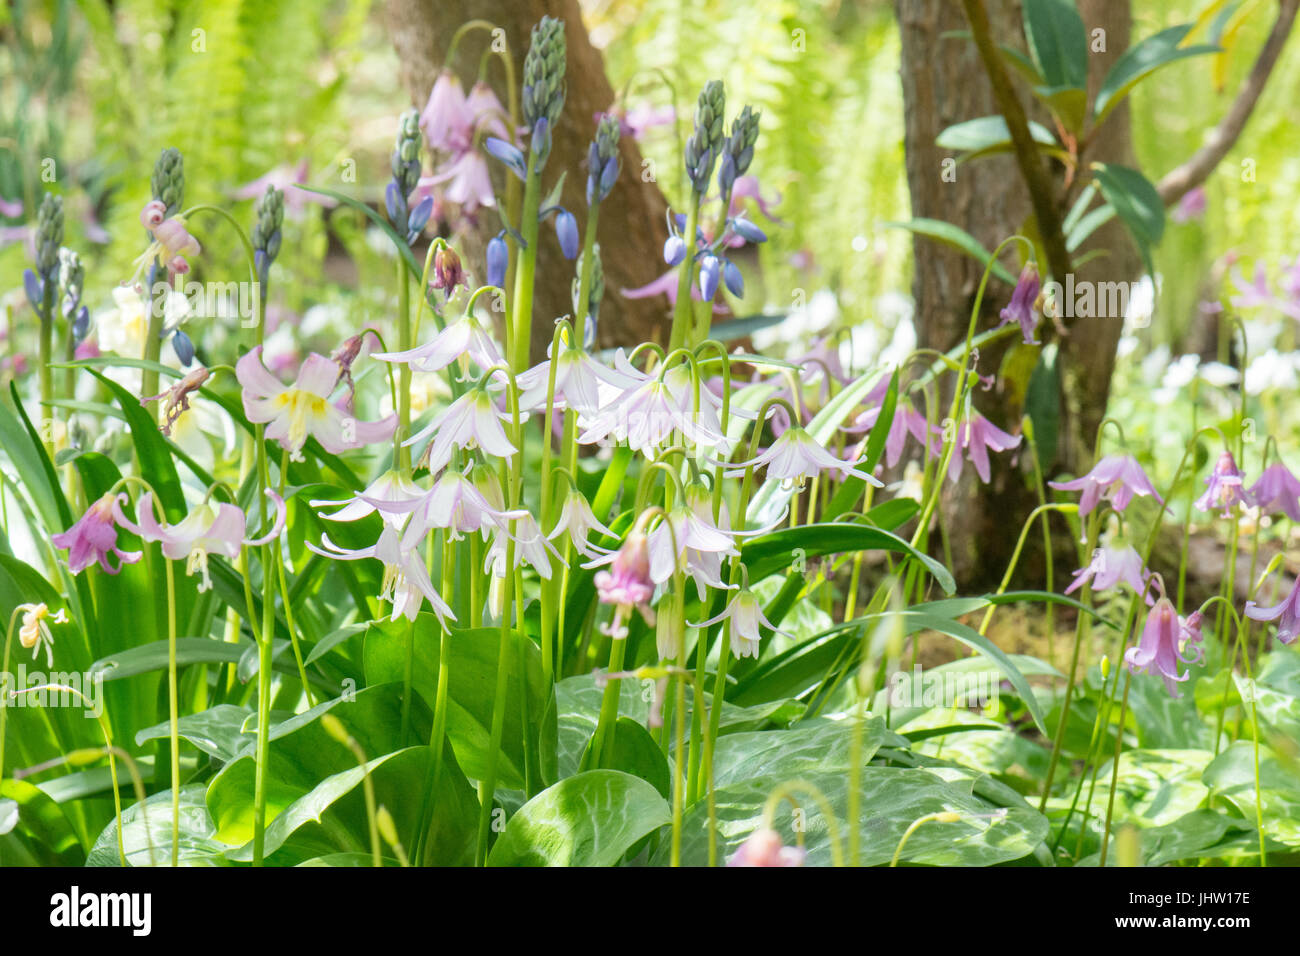 woodland plants in spring - erythronium revolutum - dog's tooth violets and bluebells - Stock Image